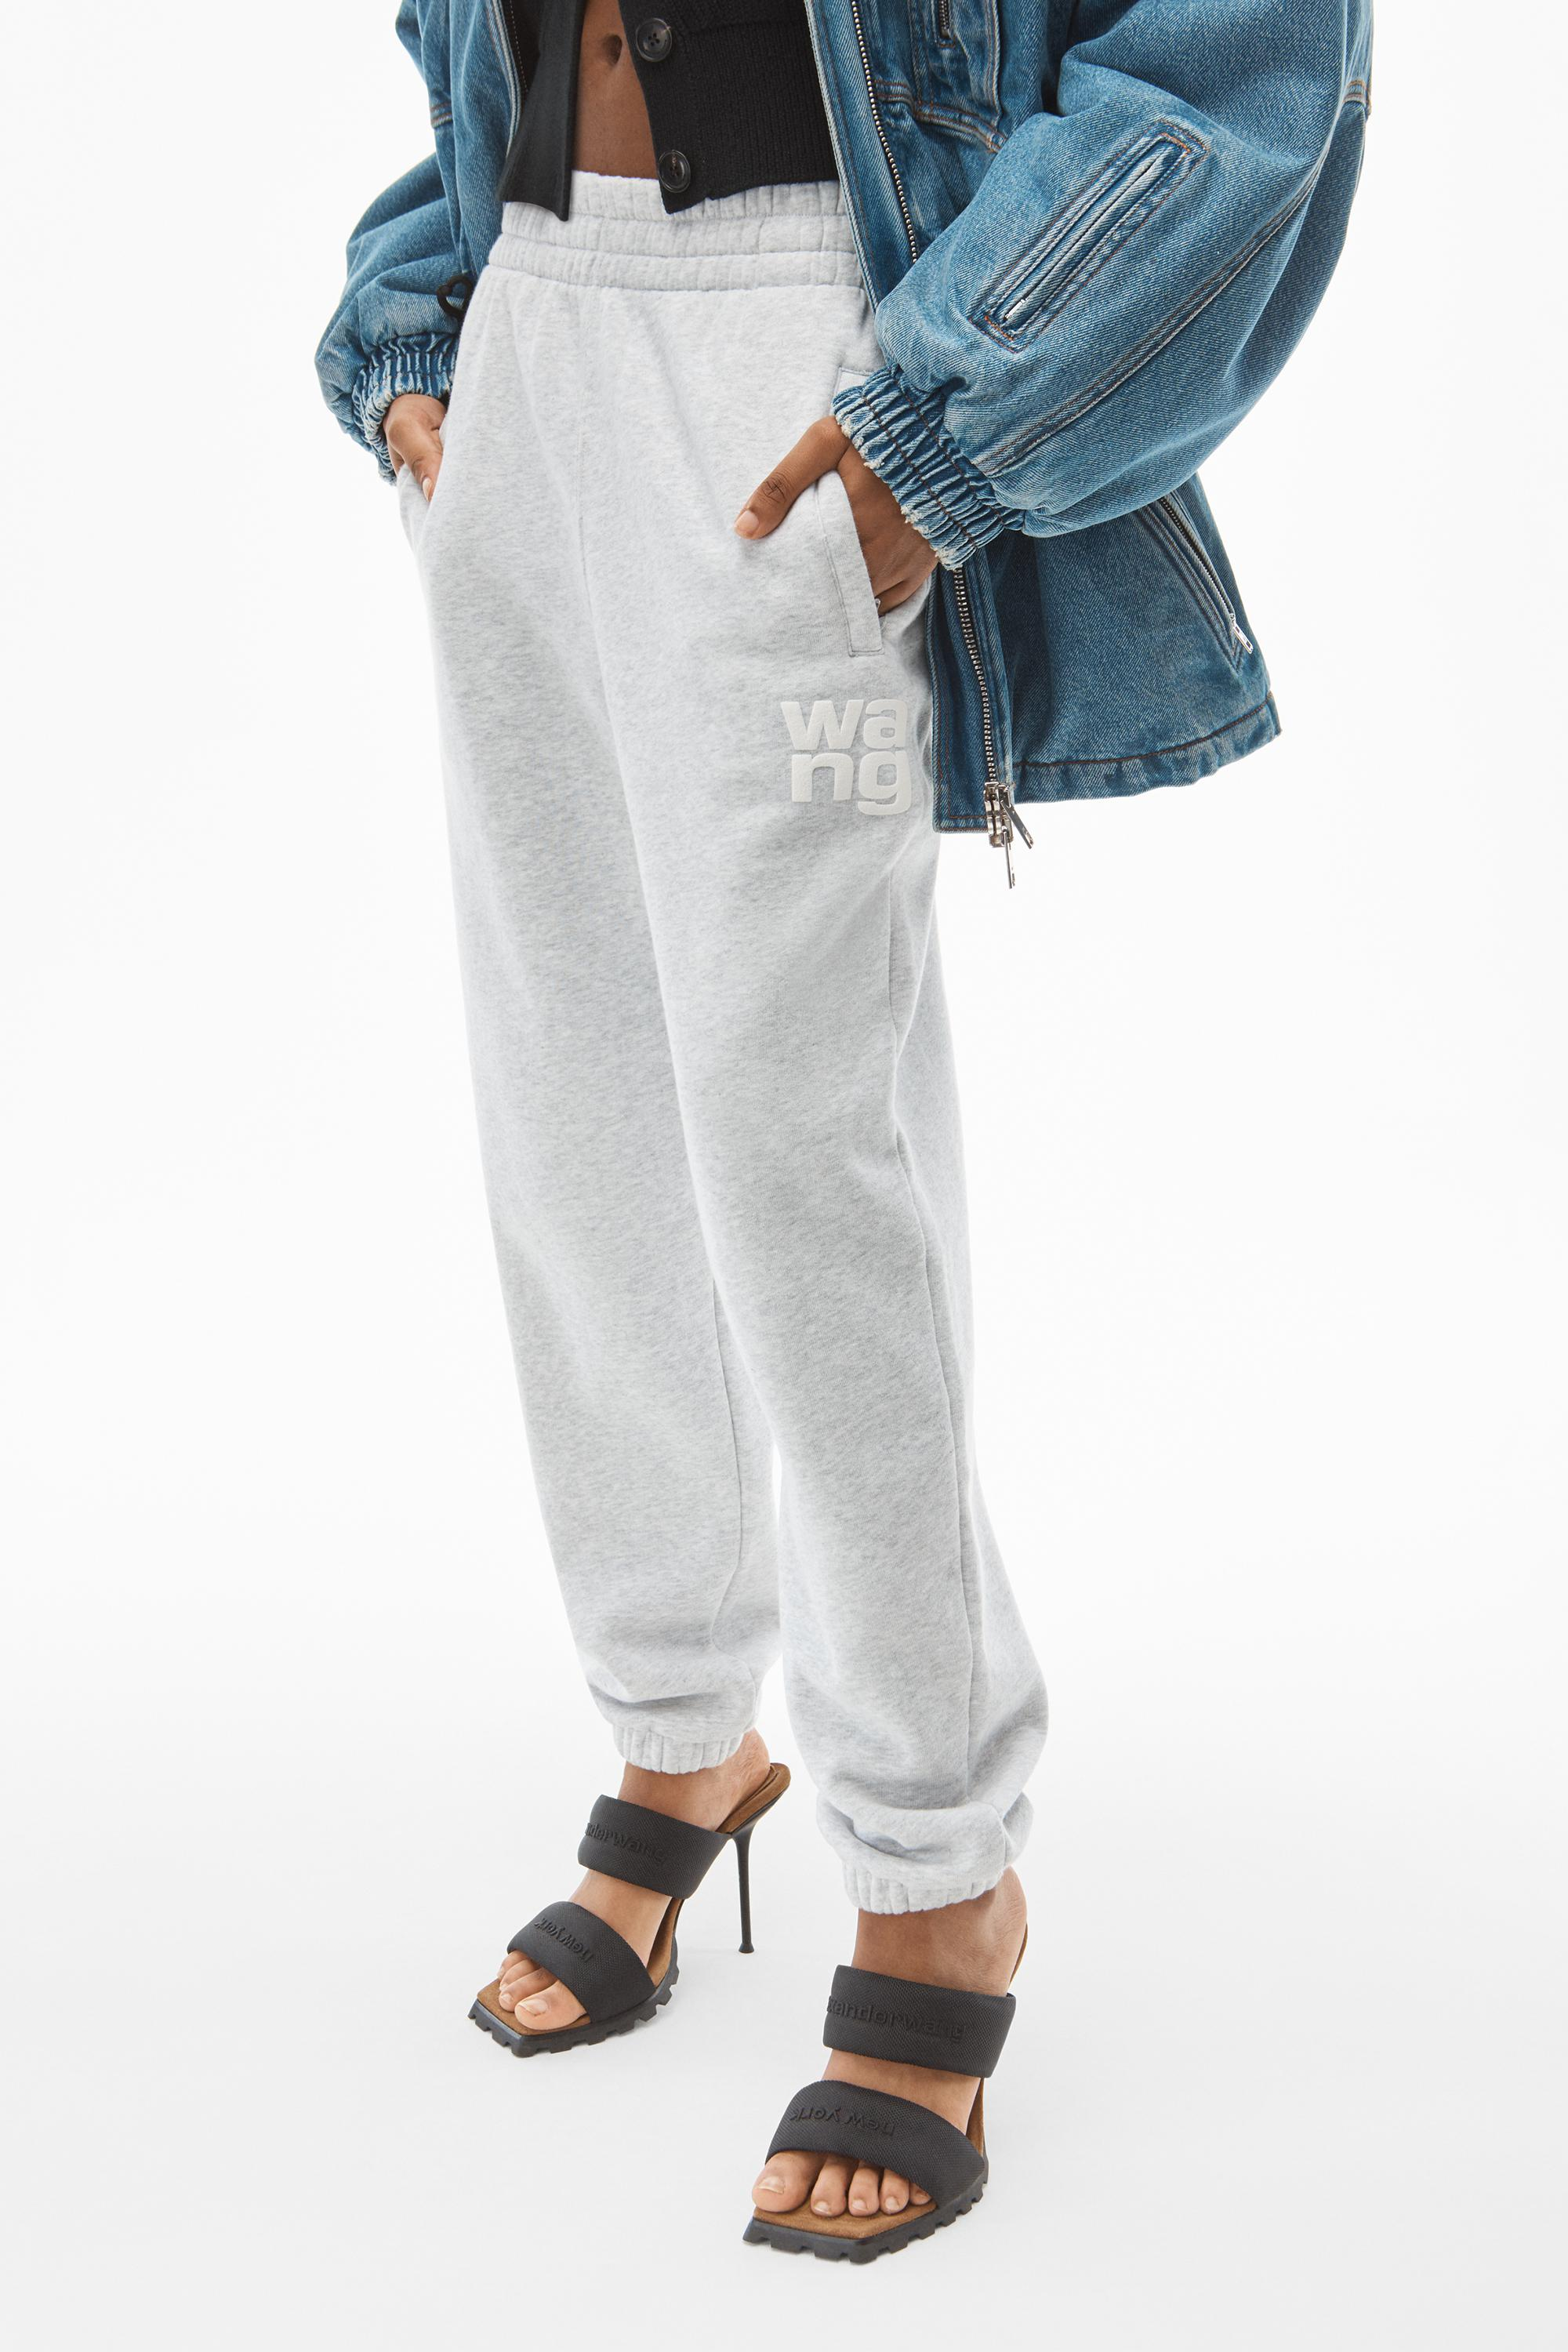 puff paint logo sweatpant in terry 2